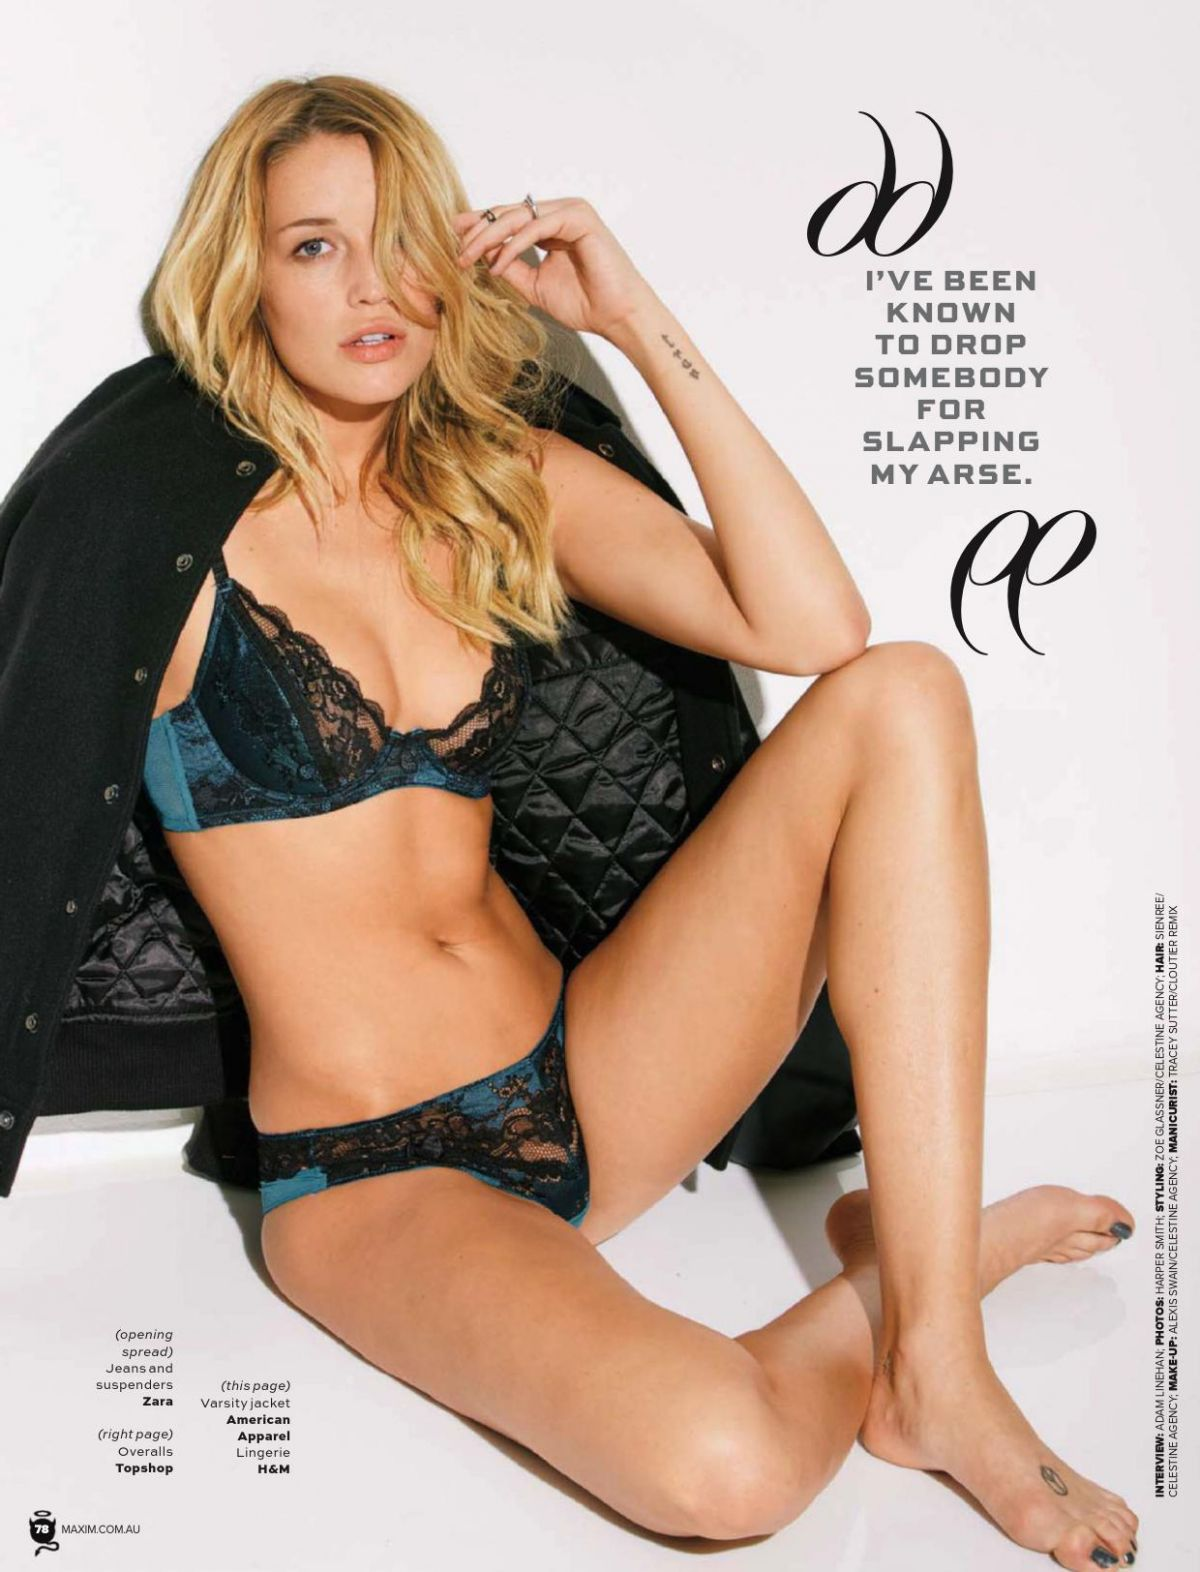 SARAH DUMONT in Maxim Magazine, May 2014 Issue